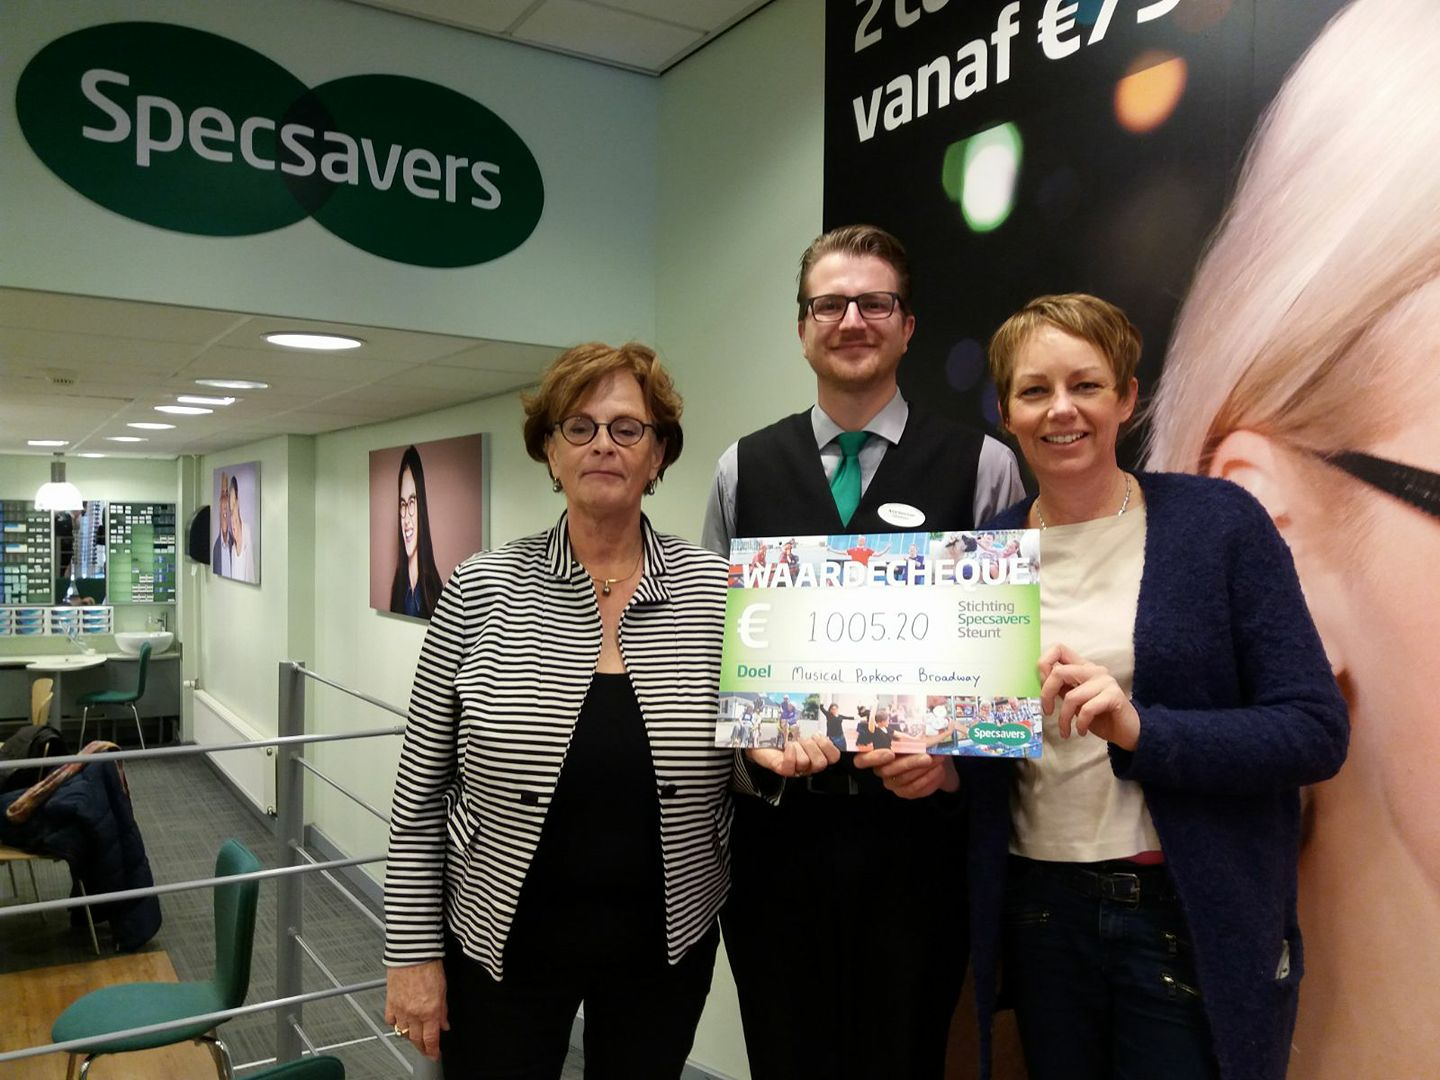 Stichting Specsavers Steunt Musical Popkoor BROADWAY